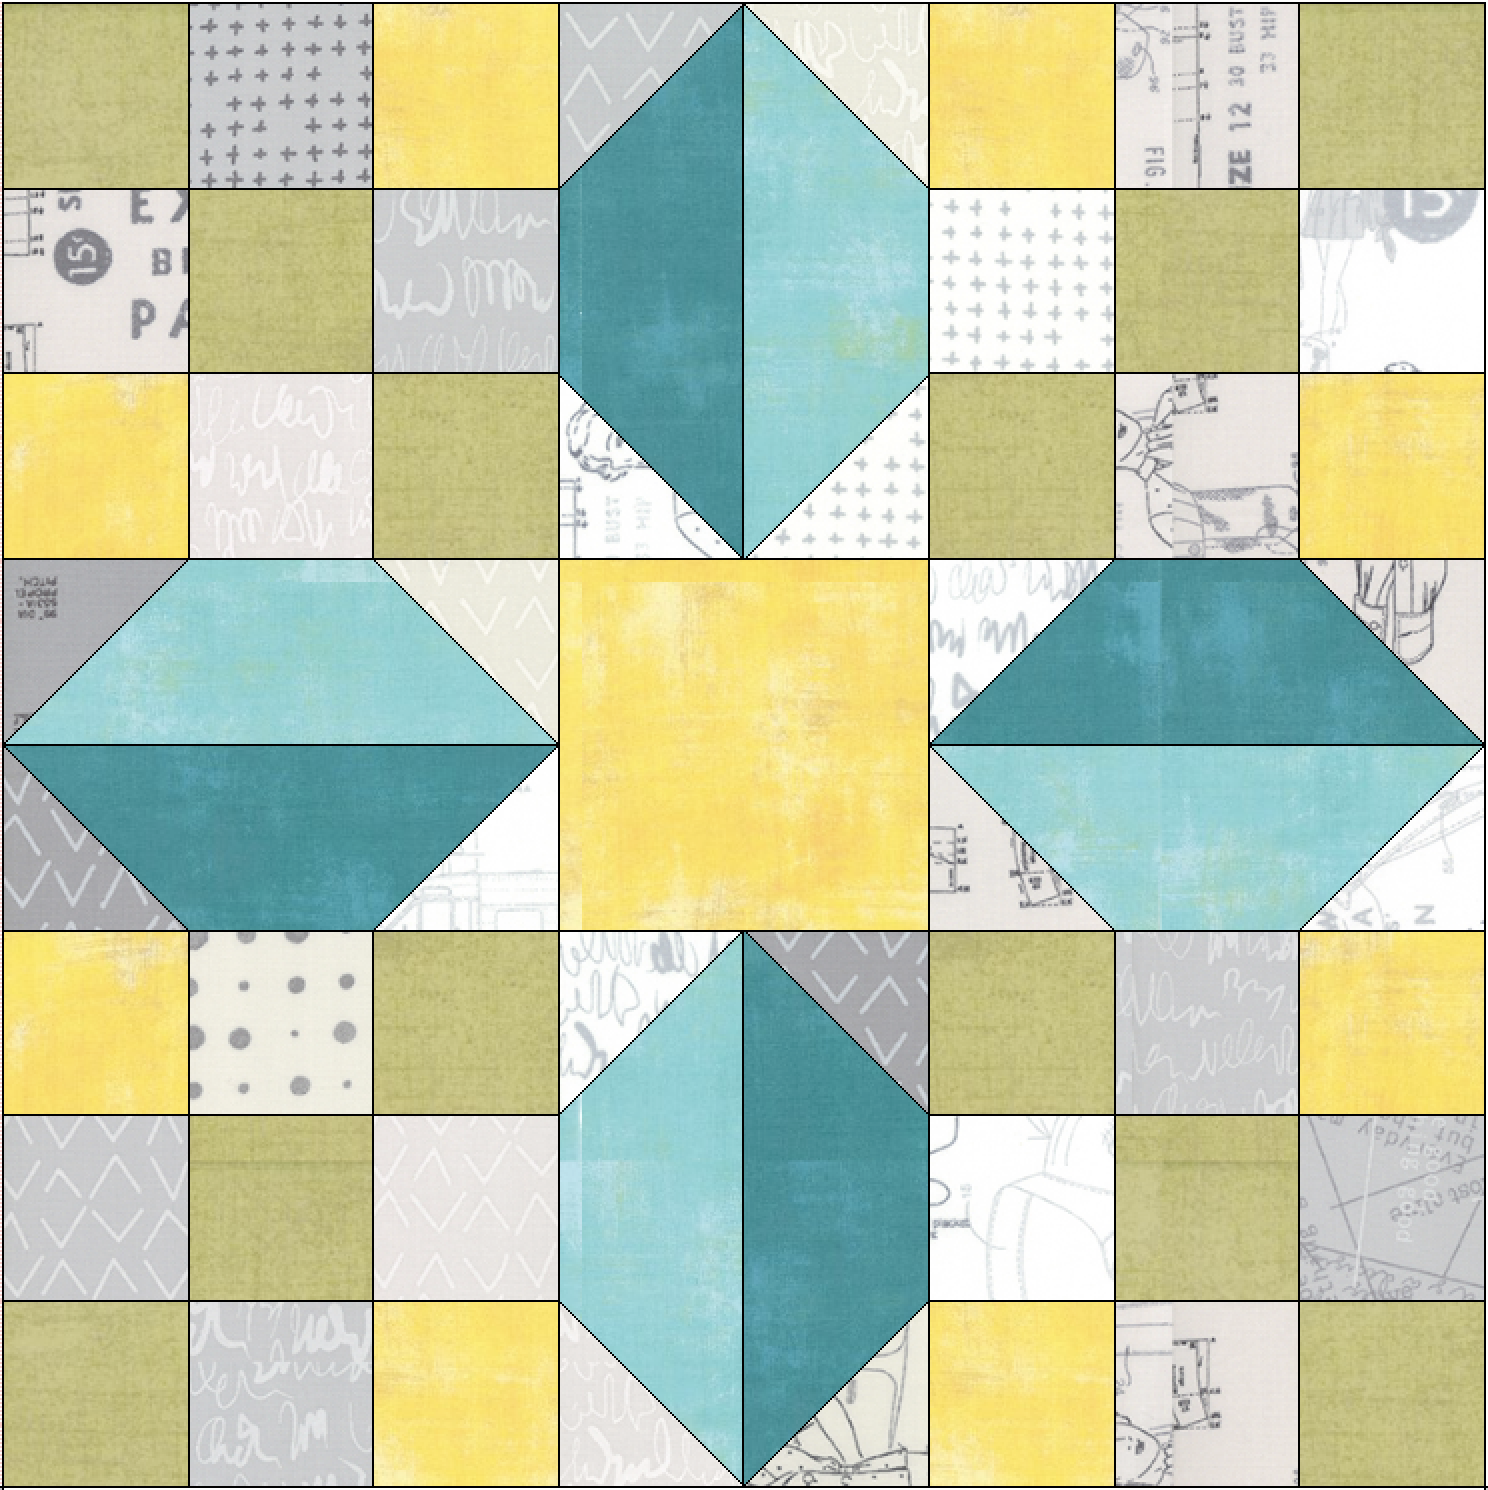 Free quilt along Blockheads 2018, Block 1: Stellar Star Fabrics used in the block are from Moda, Basic Grey GRUNGE and Zen Chic MORE PAPER